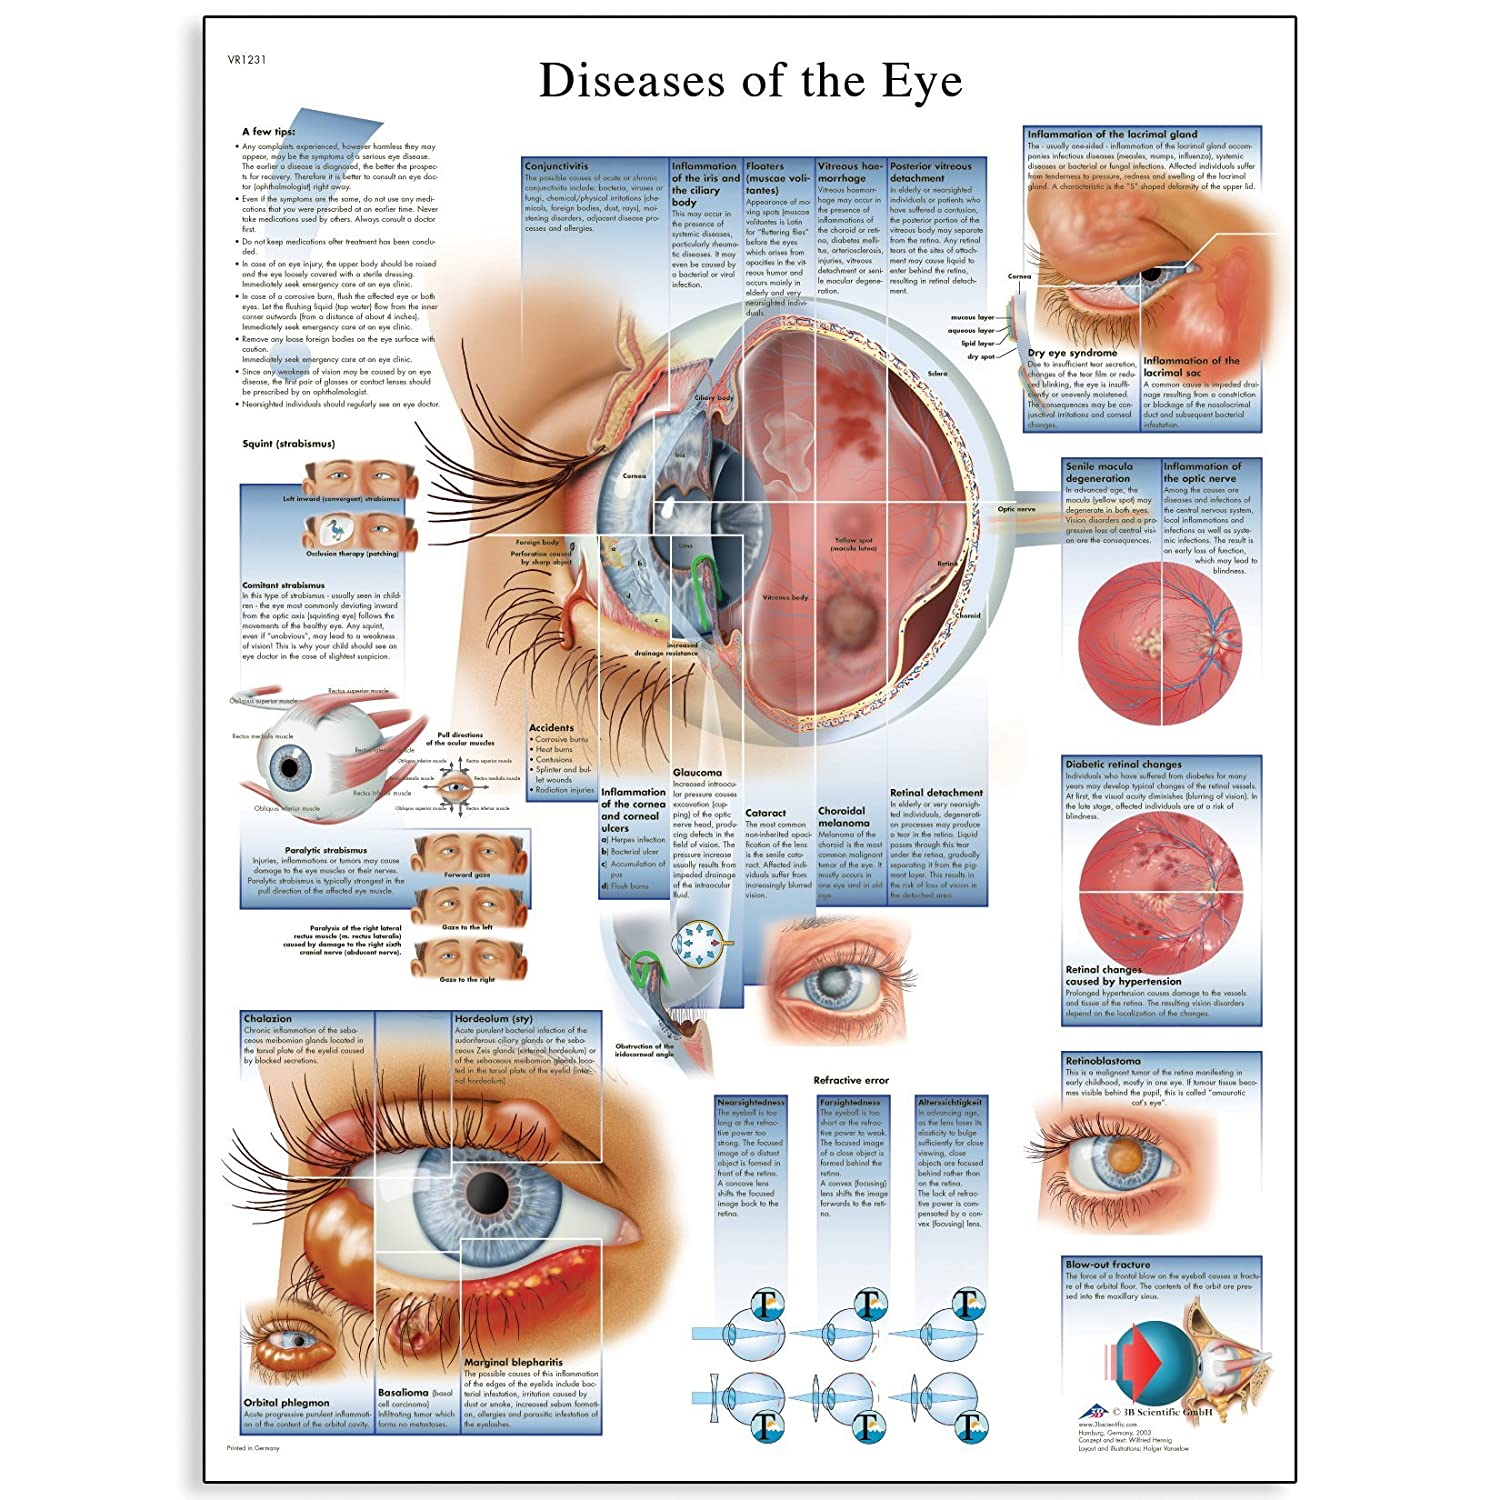 3B Scientific VR1231UU Glossy Paper Diseases of The Eye Anatomical Chart, Poster Size 20-Inch Widthx26-Inch Height